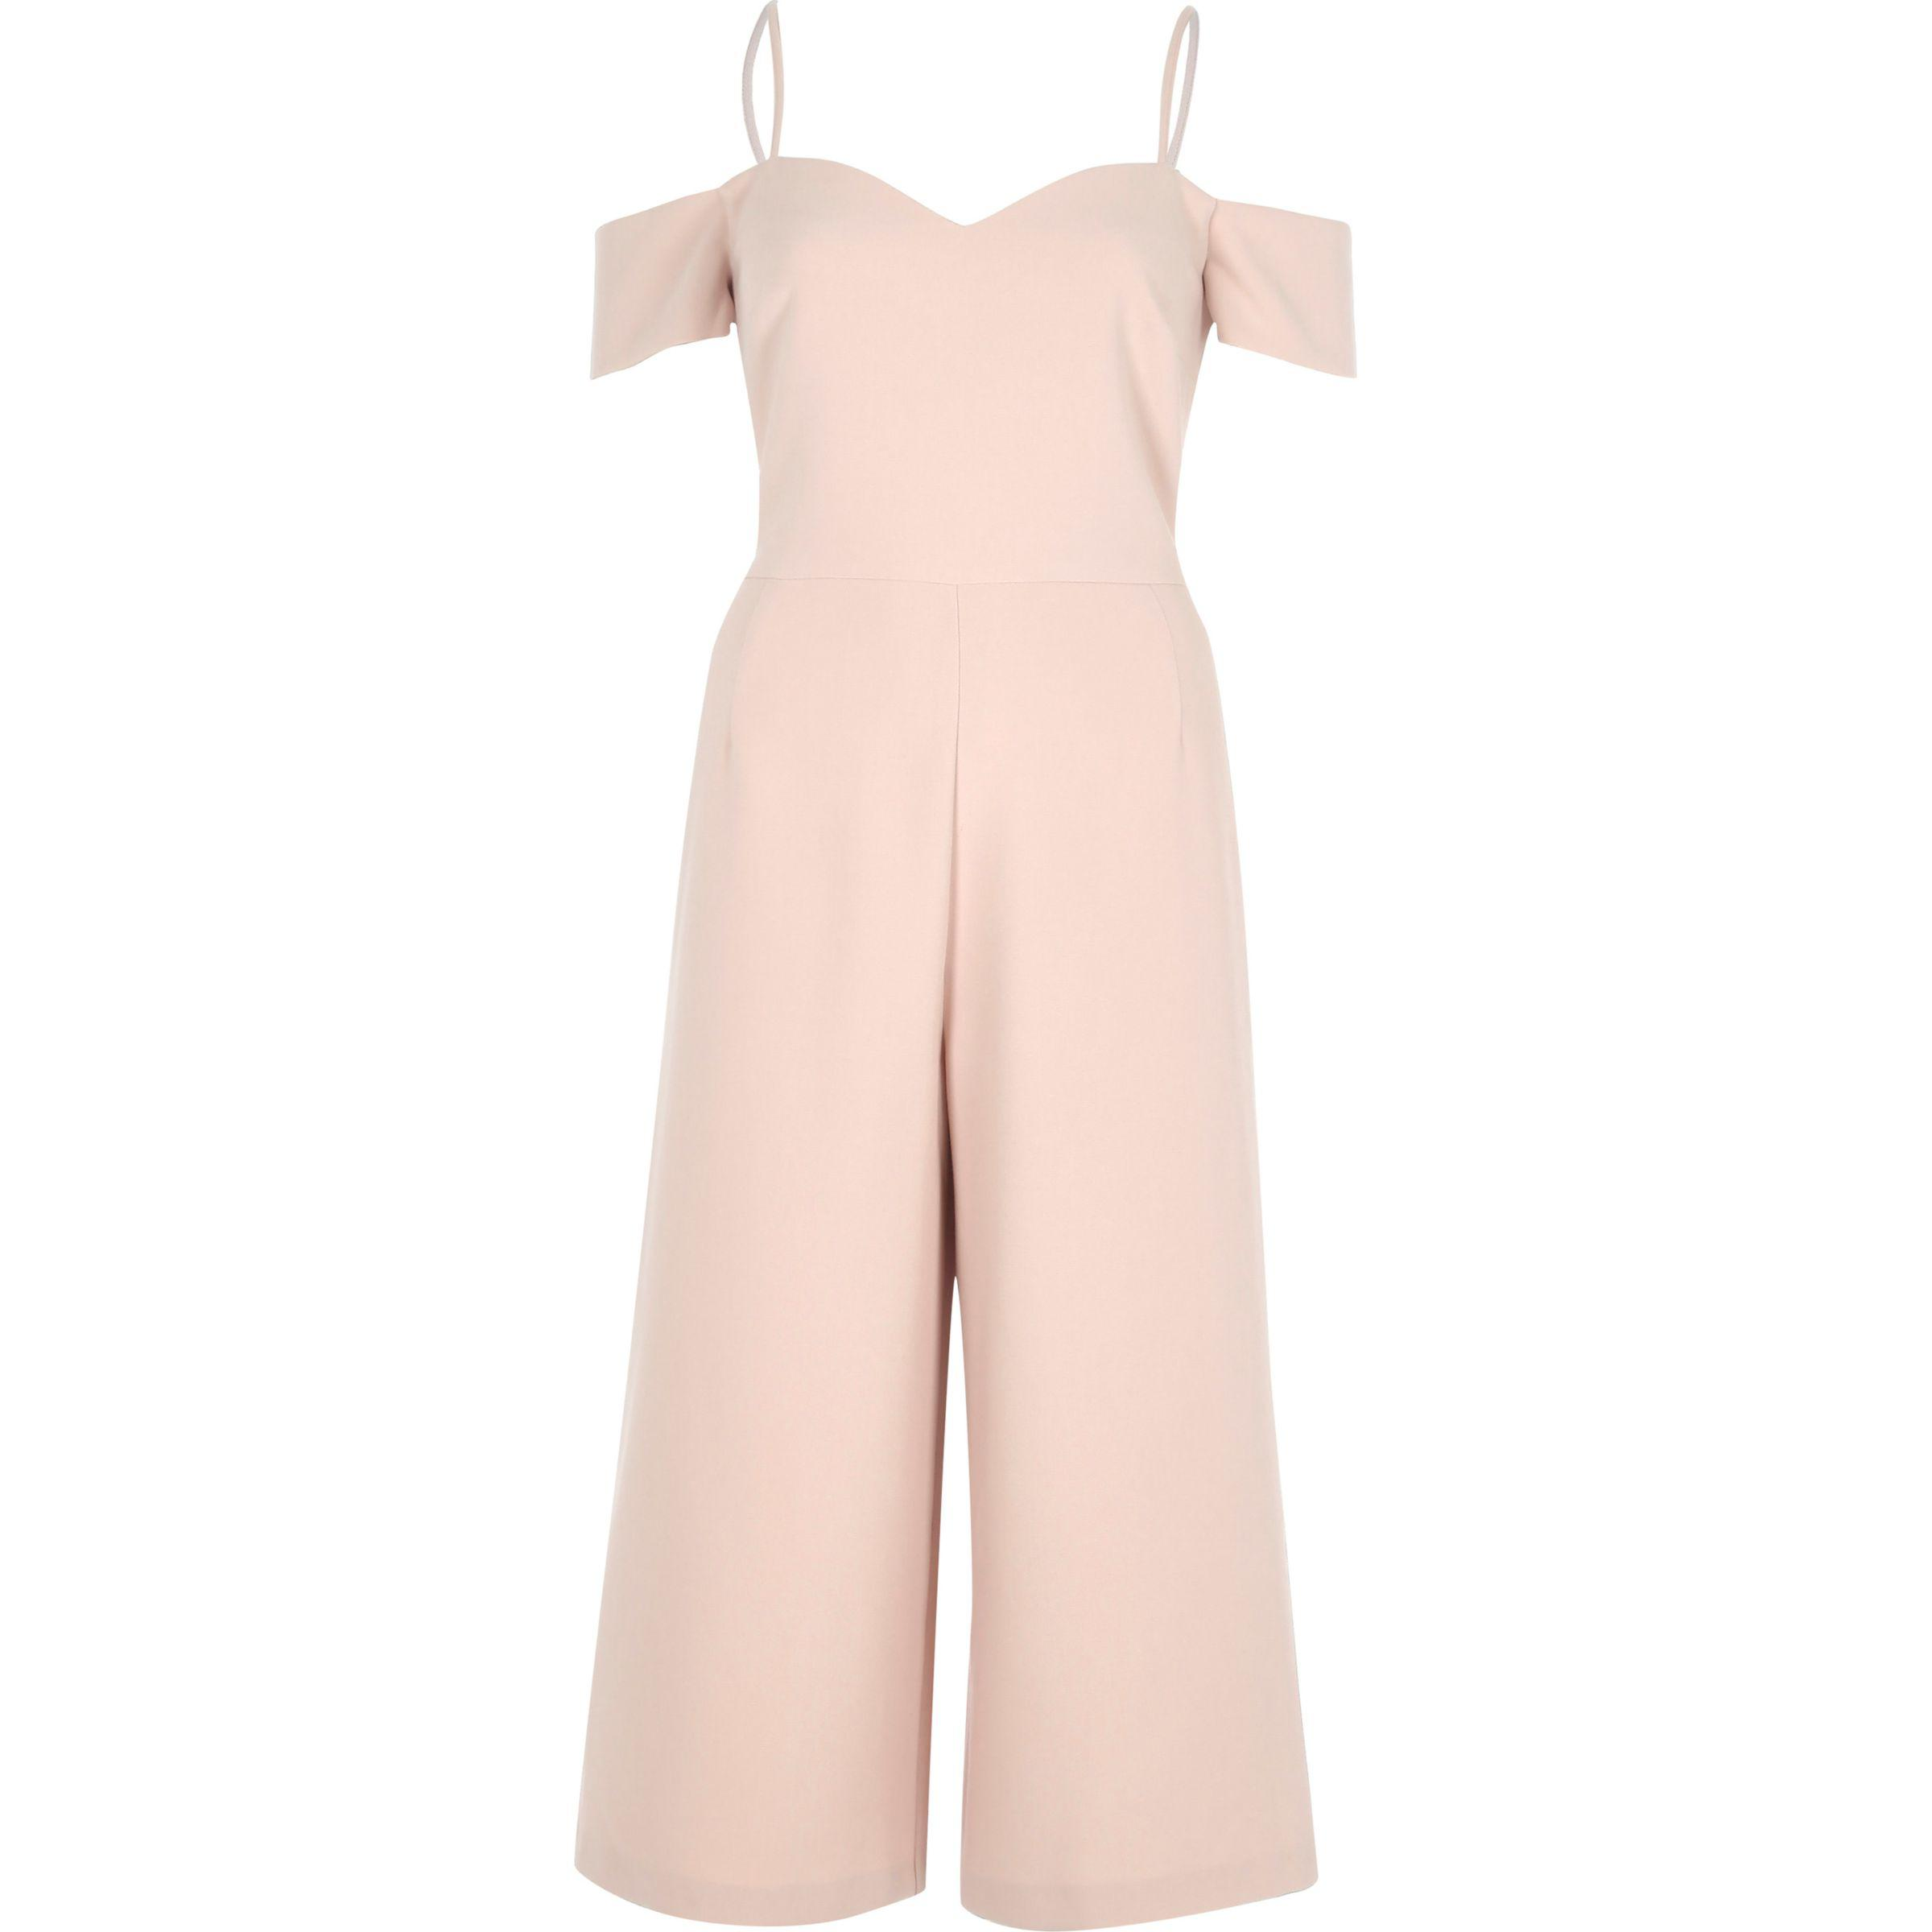 5b64bb6f1b3 Lyst - River Island Light Pink Bardot Fitted Culotte Jumpsuit in Pink